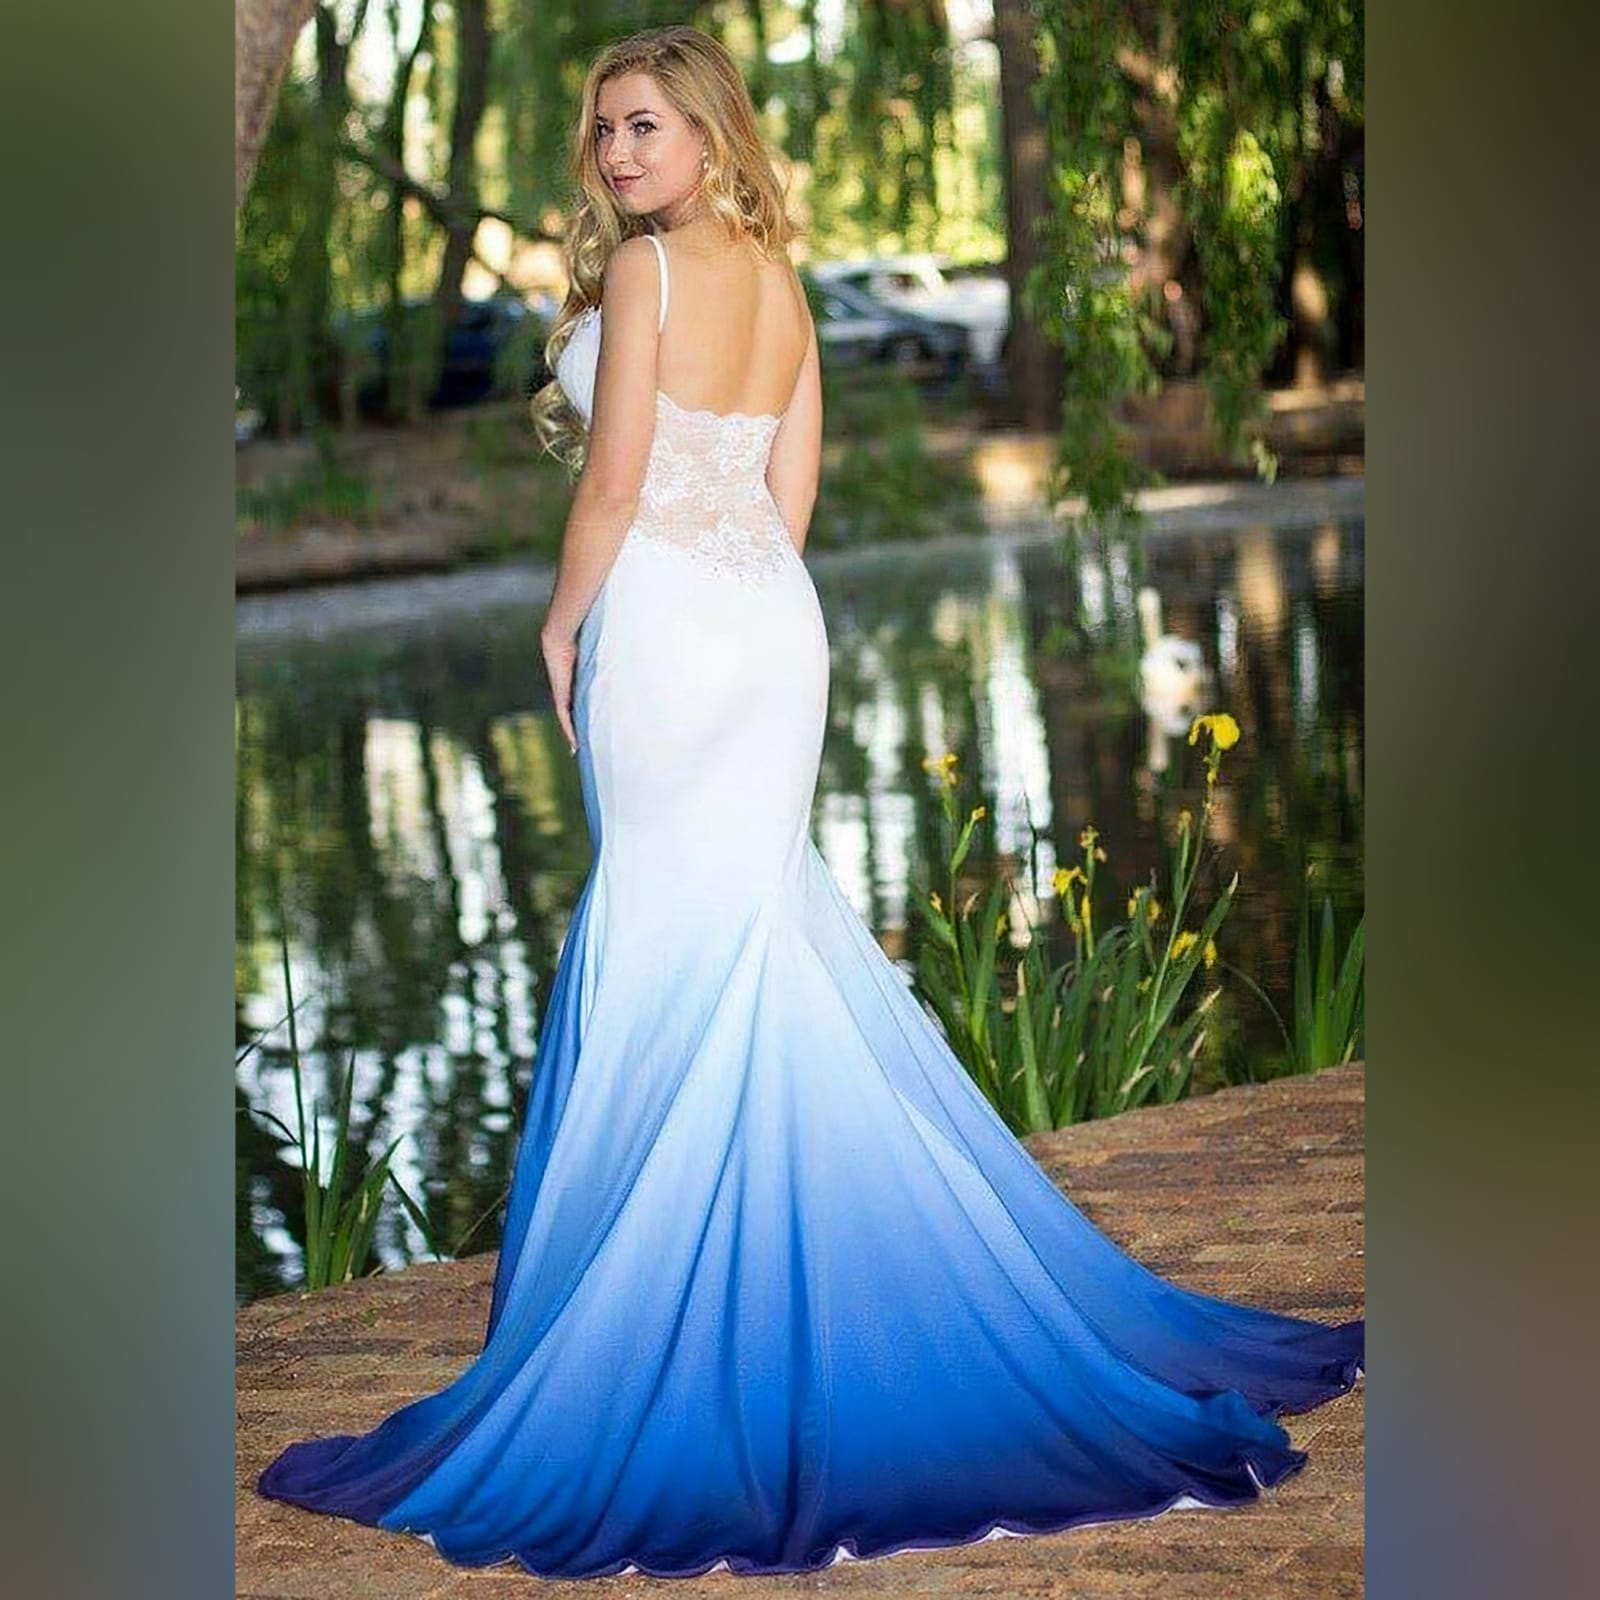 White & blue ombre soft mermaid prom dress with a sheer lace back 3 white & blue ombre soft mermaid prom dress with a sheer lace back. A sweetheart neckline. With a touch of silver beads and a train